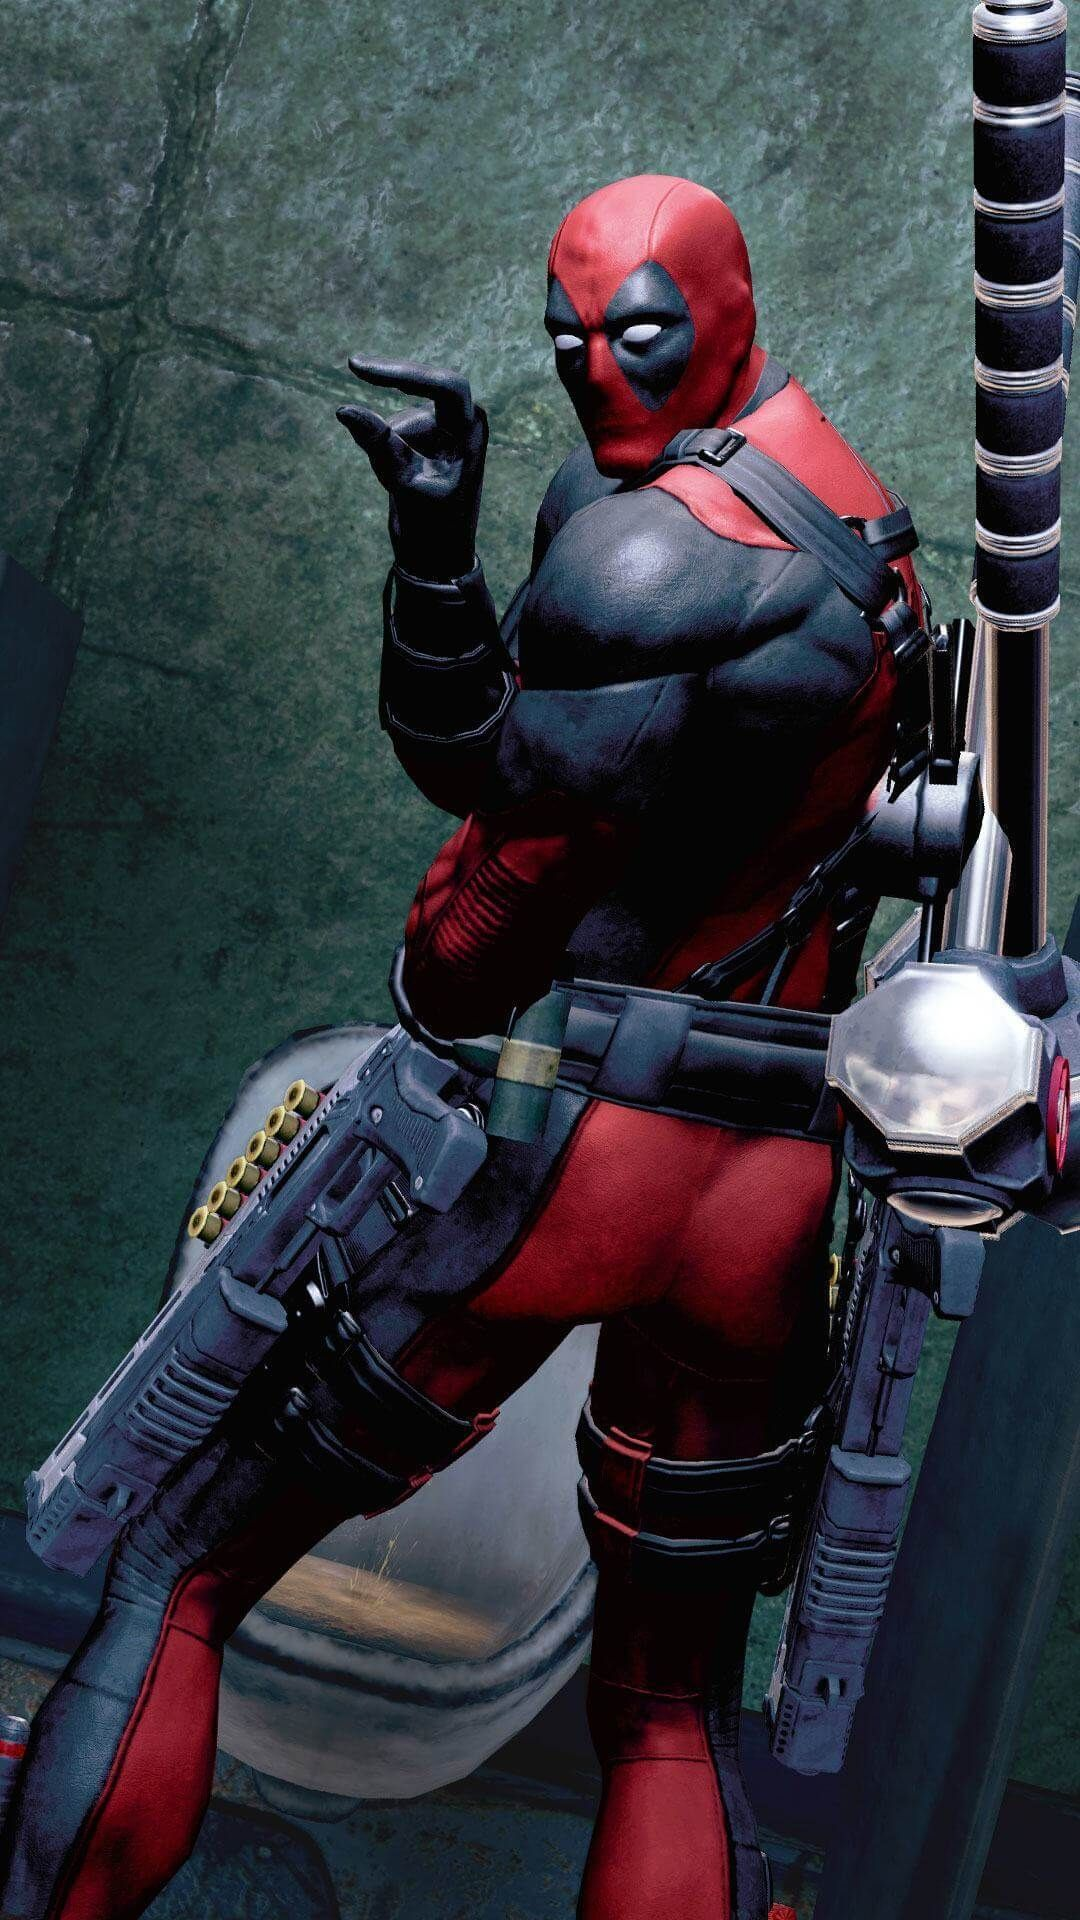 Deadpool Wallpapers Hupages Download Iphone Wallpapers Deadpool Wallpaper Deadpool Wallpaper Iphone Deadpool Live Wallpaper